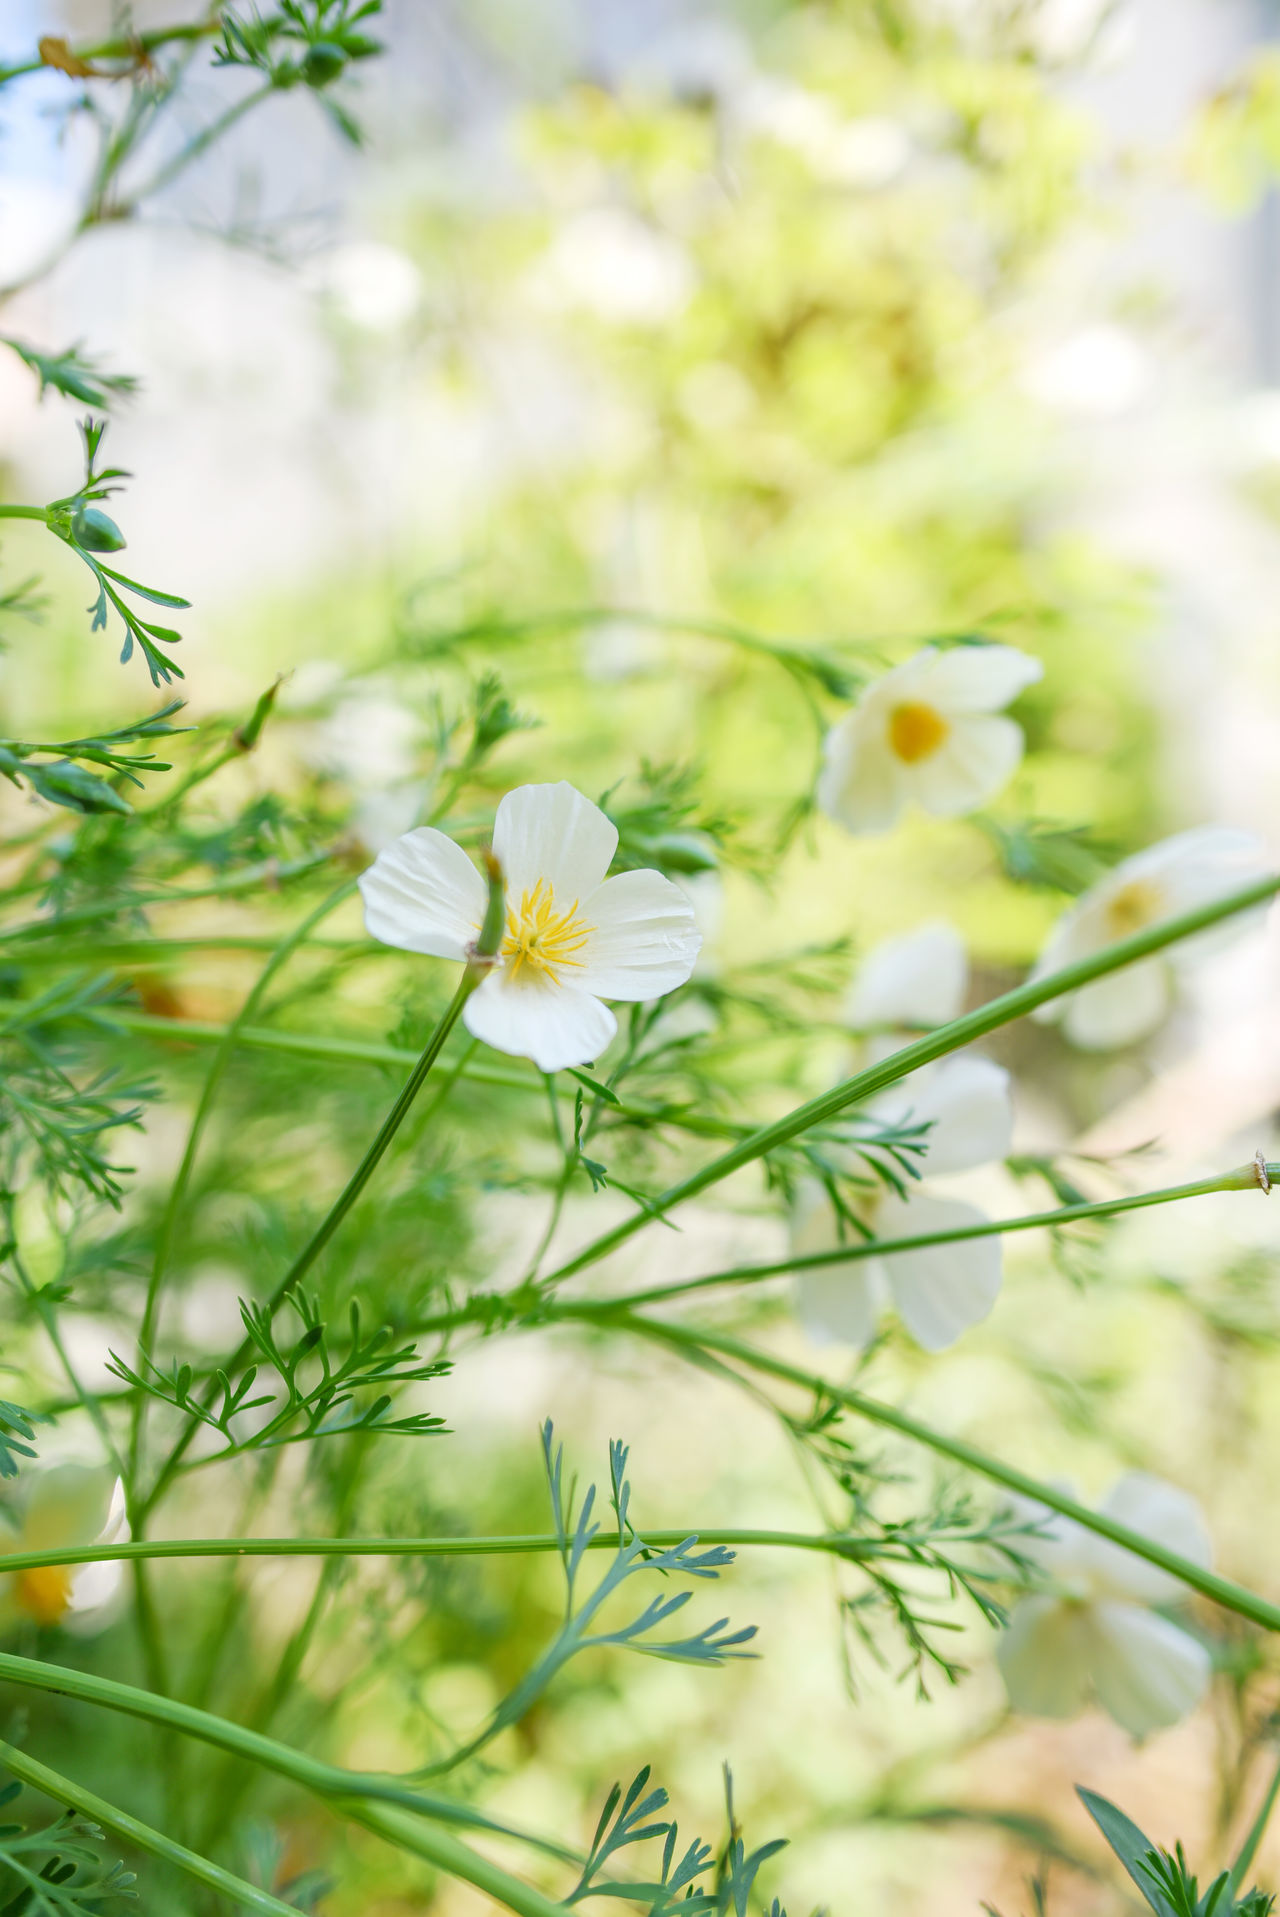 Bokeh Photography EyeEm Gallery EyeEm Nature Lover Flower Collection Flowerporn Light Green Nature Poppies  Reflection Sunshine Taking Pictures